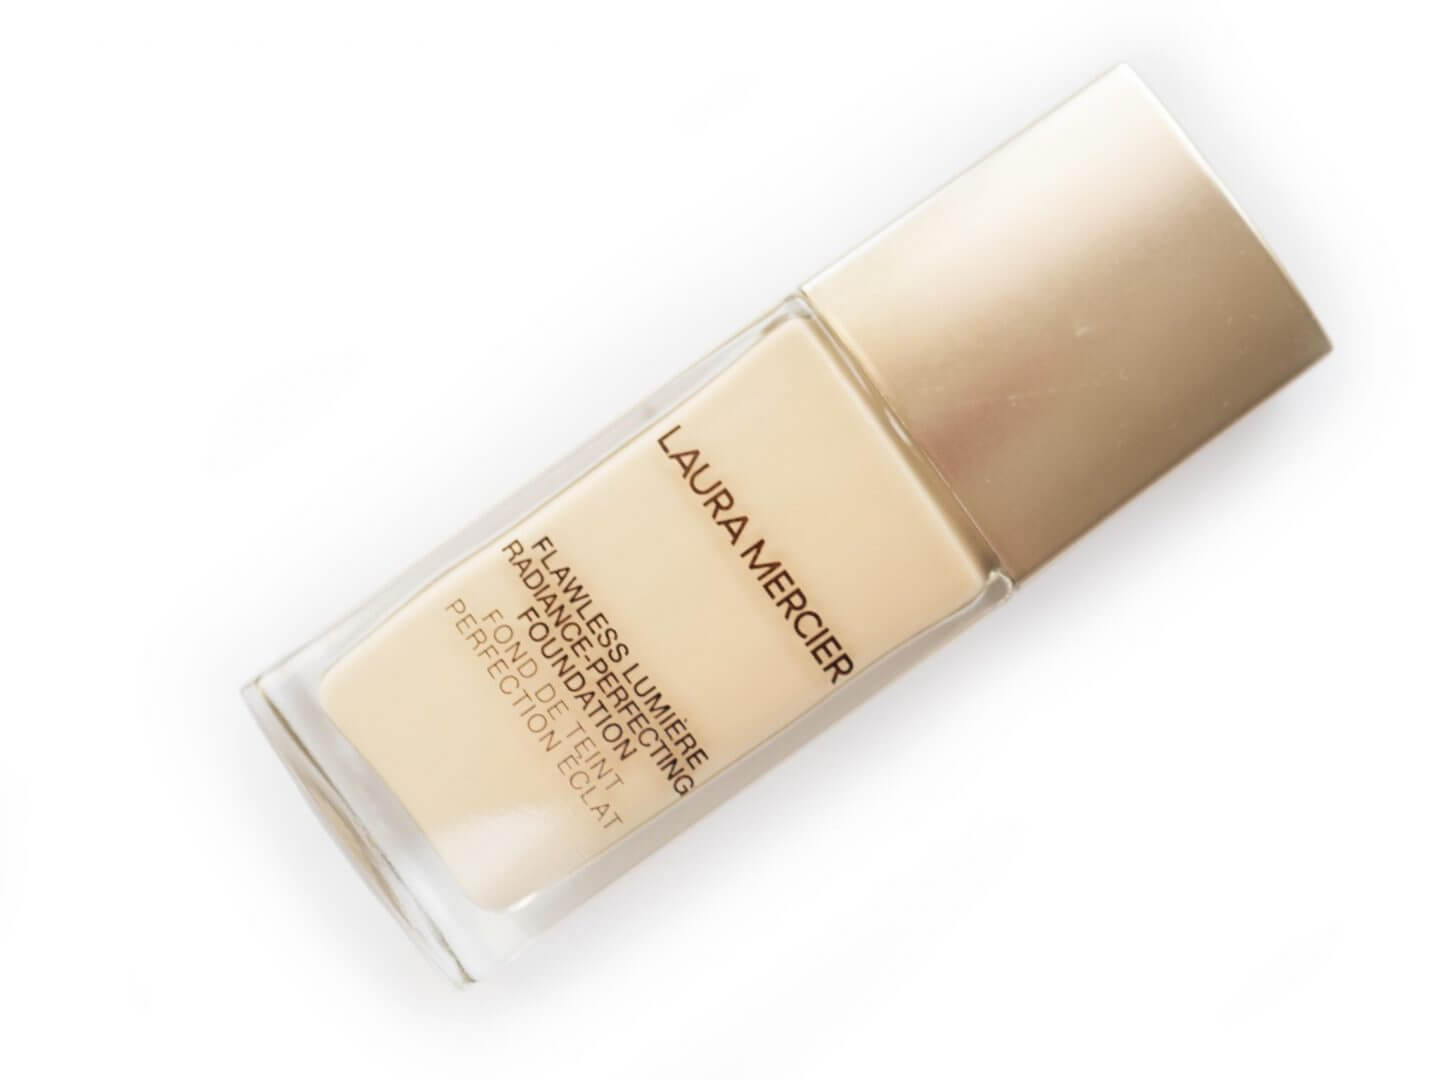 Laura Mercier Flawless Lumiere Radiance Perfecting Foundation